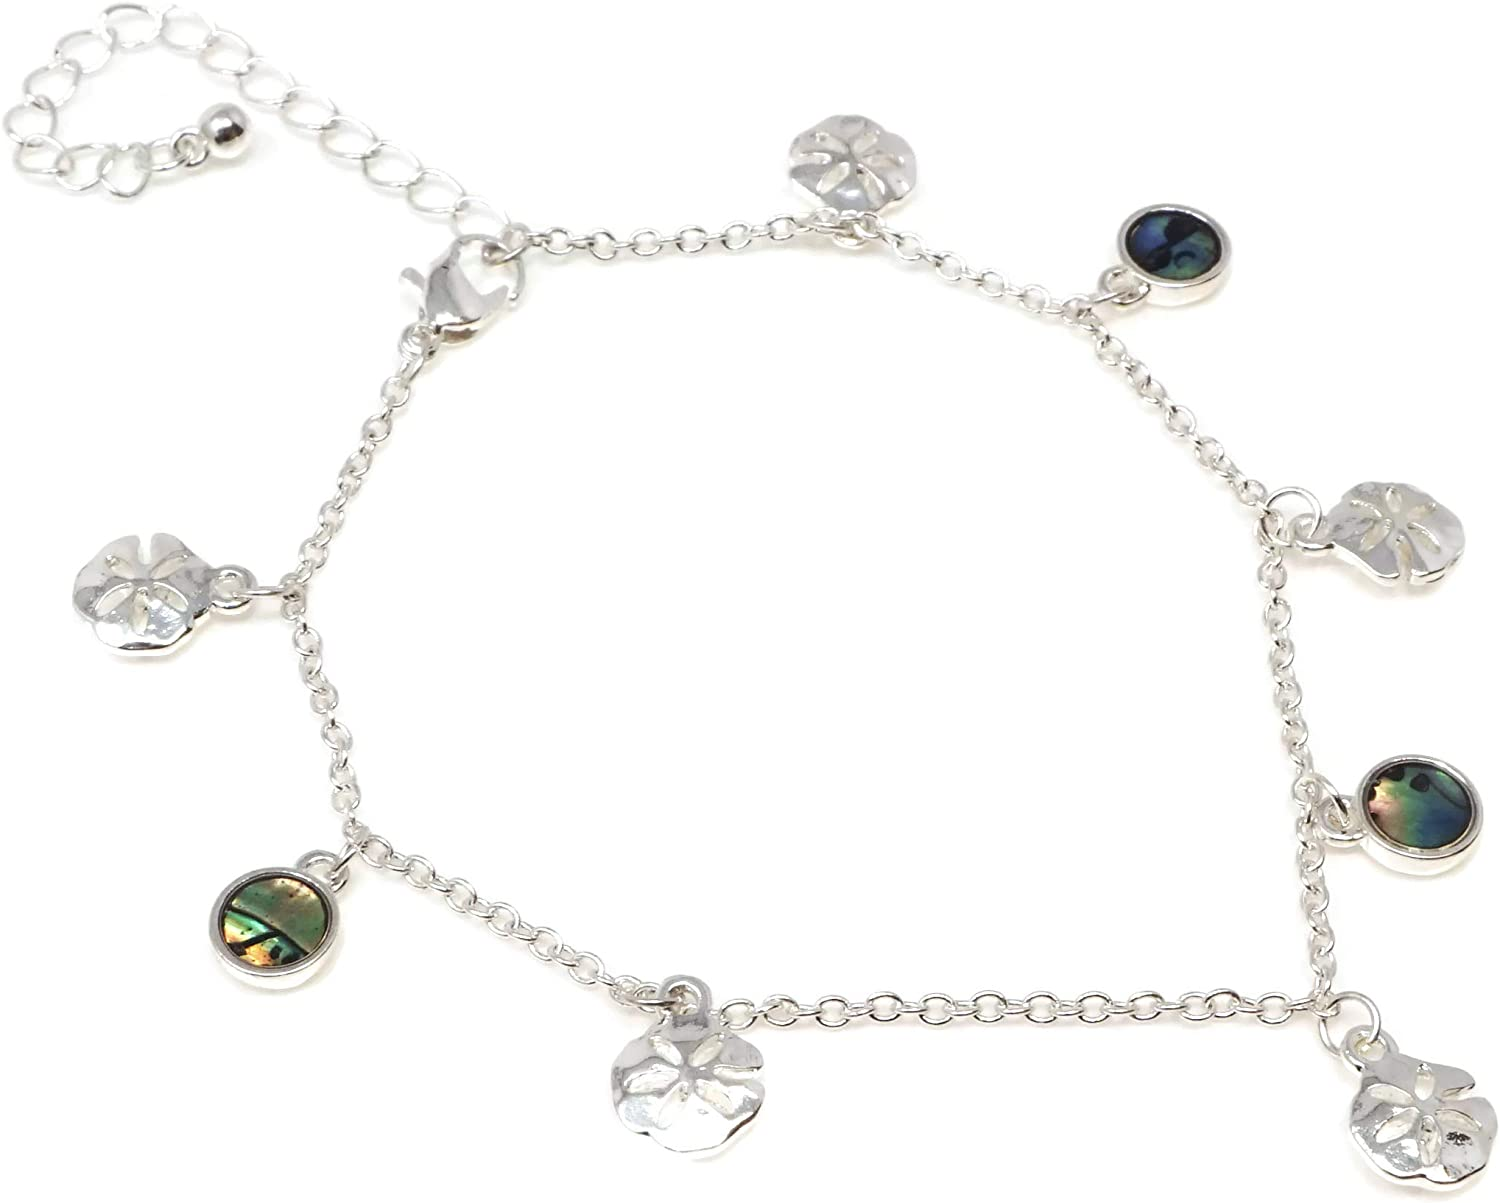 Elosee Sealife Theme Abalone Shell Dangling Chain Anklet